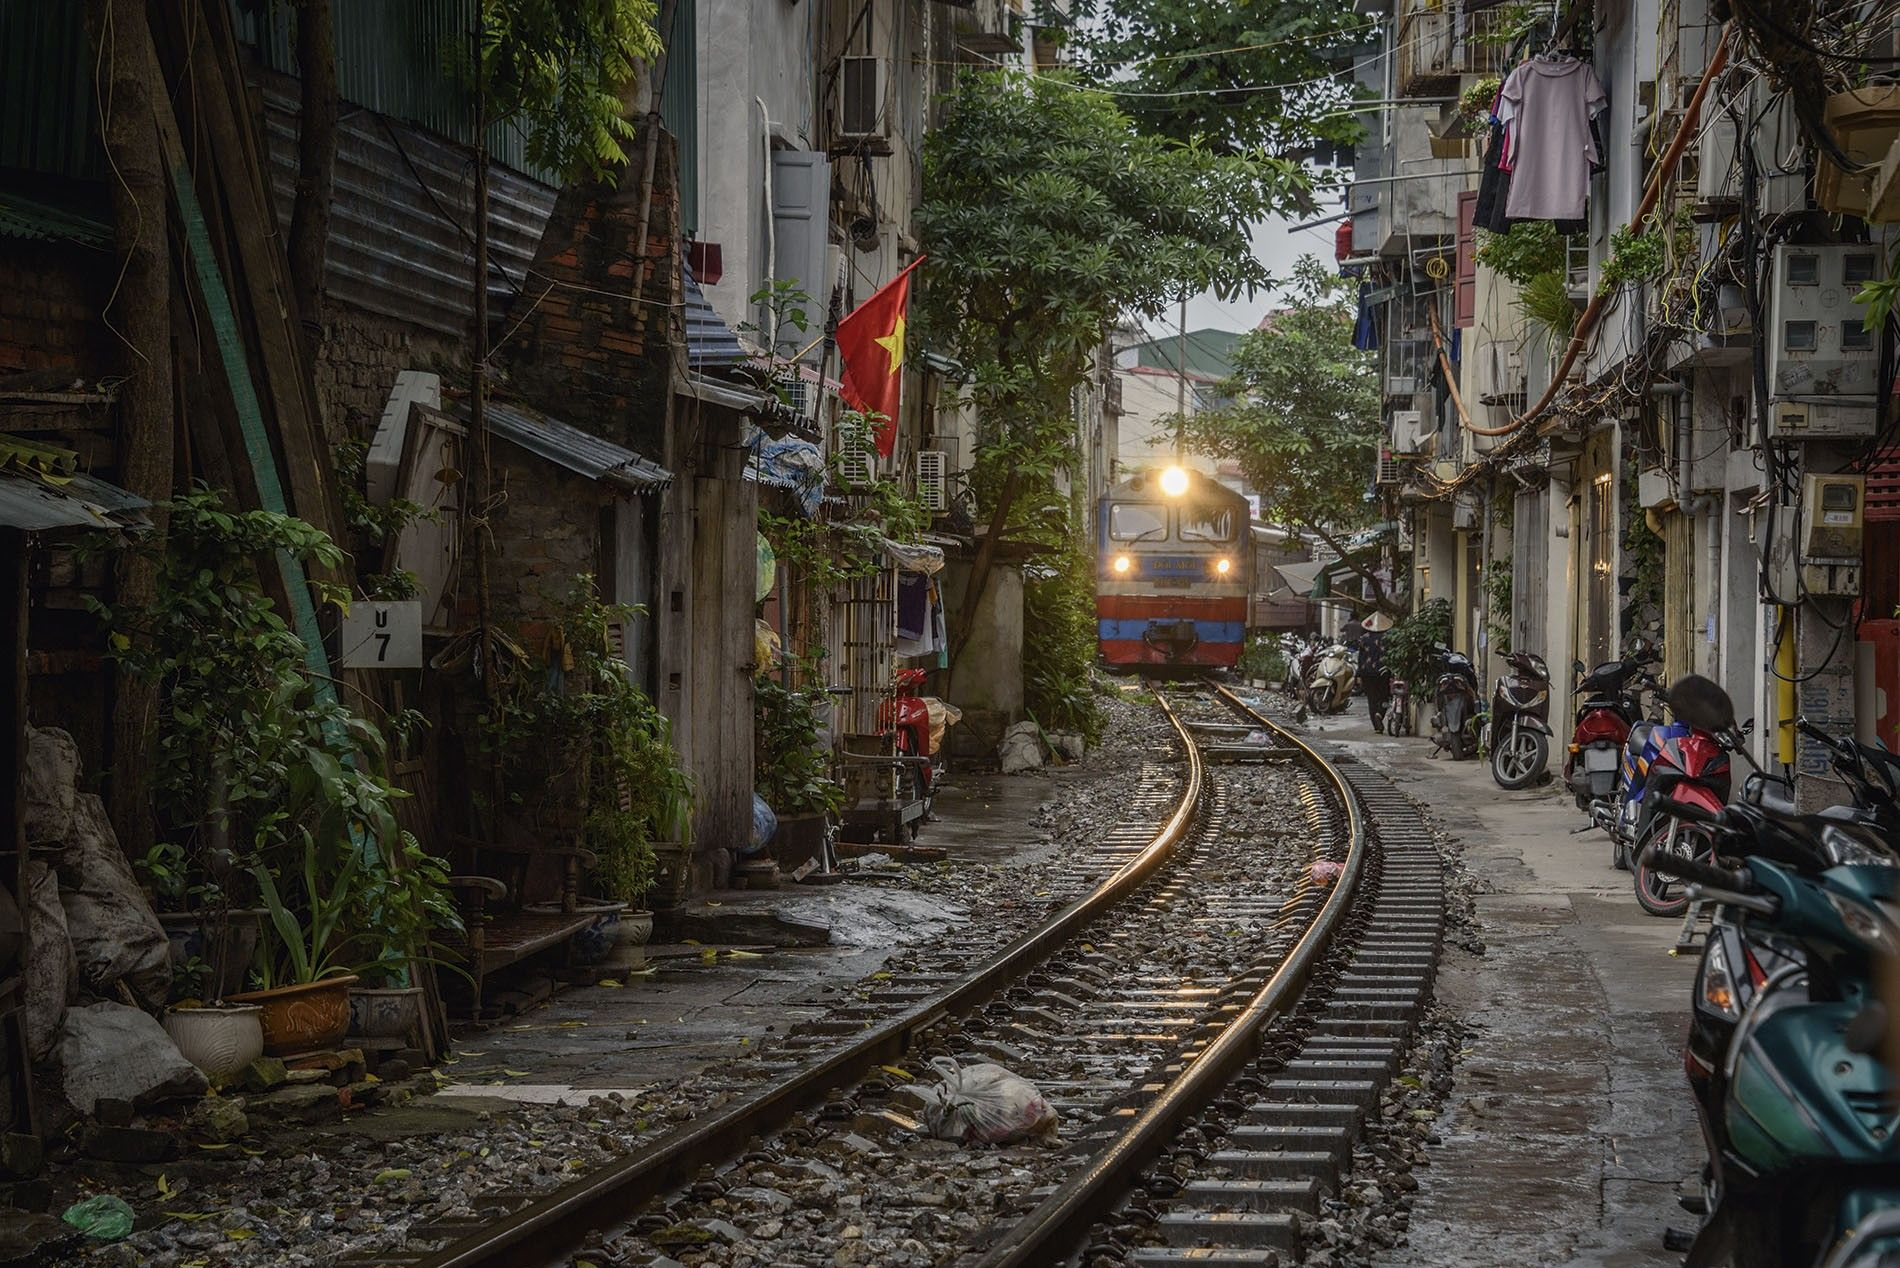 The the Reunification Express passes through Hanoi's Old Quarter.